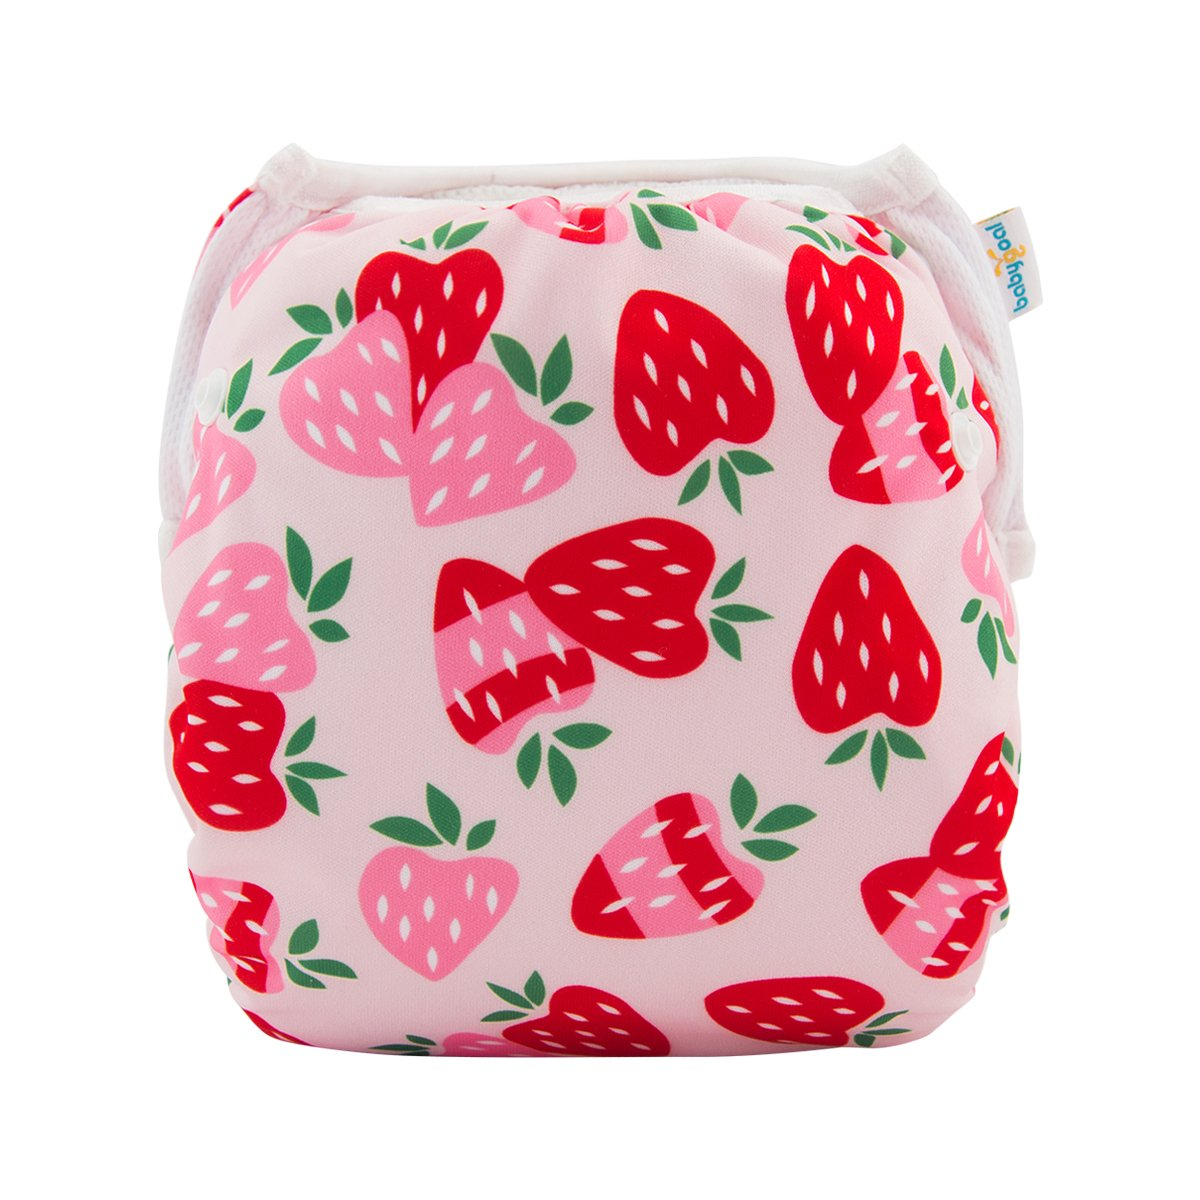 Washable and Adjustable for Babies 0-2 Years Baby Shower Gift /& Swimming Lessons babygoal Baby Reusable Swim Diaper